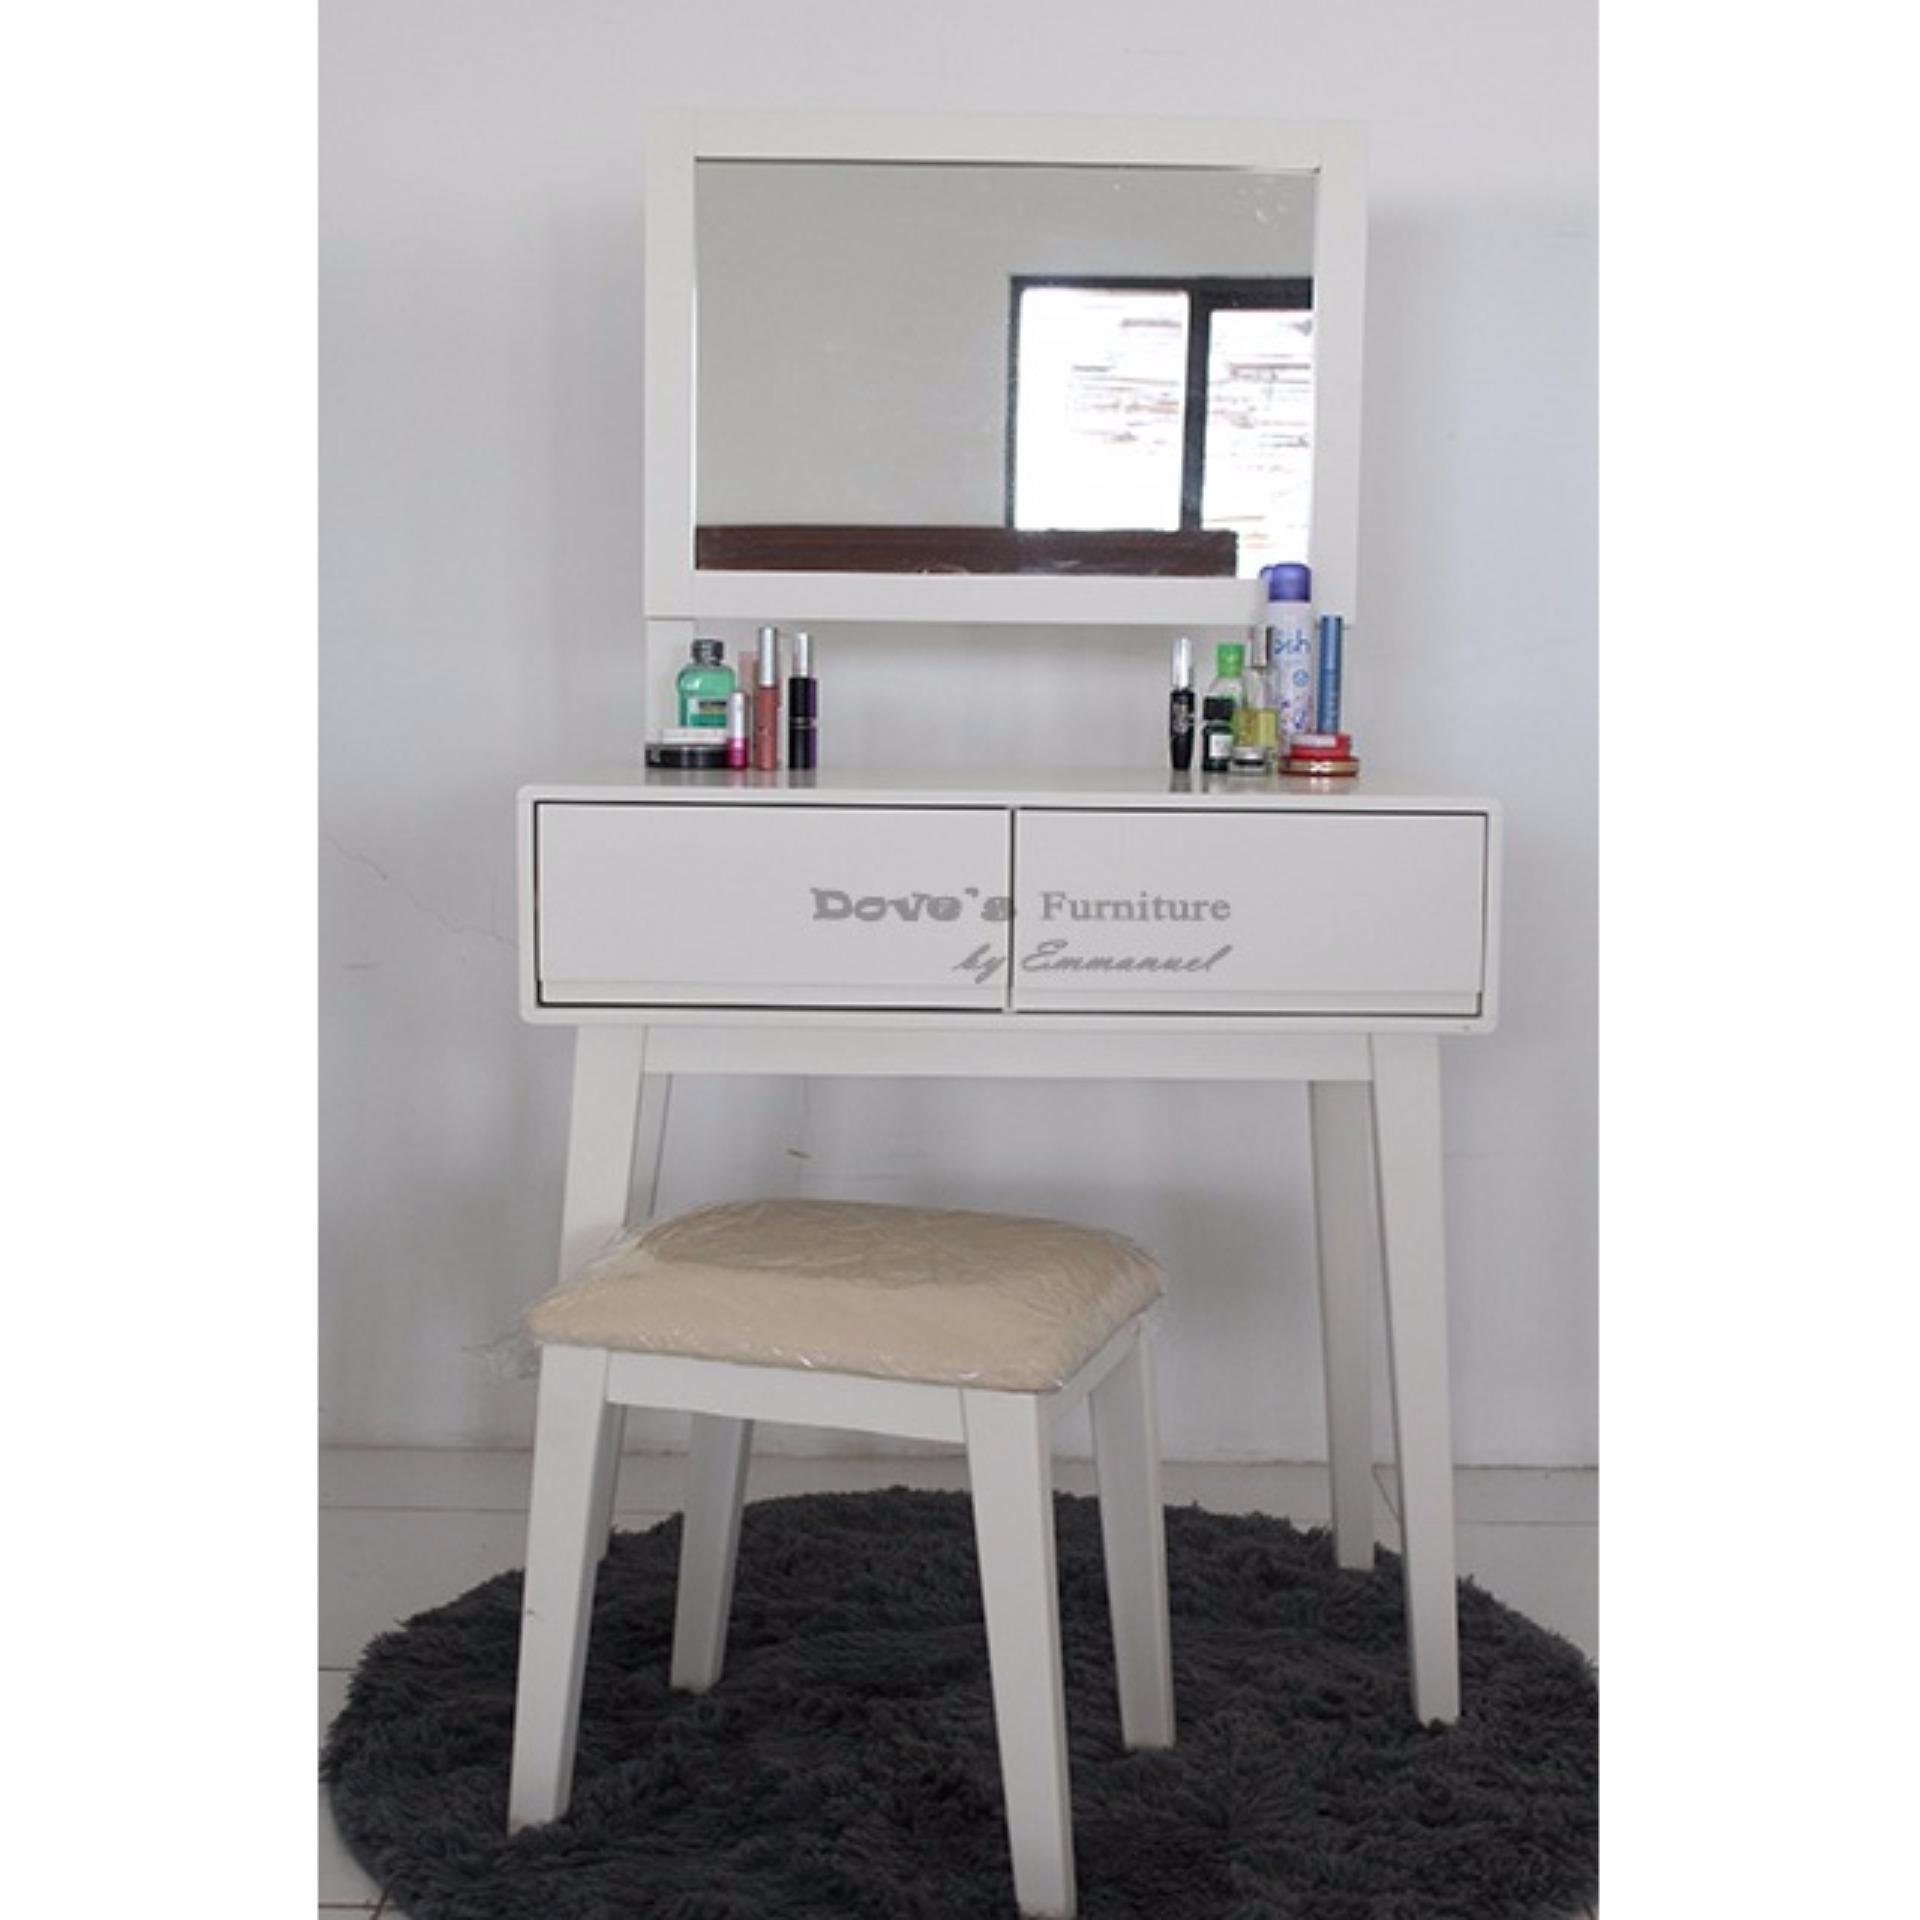 Dove's Meja Rias Minimalis MR-010 - With 2 Drawer - putih